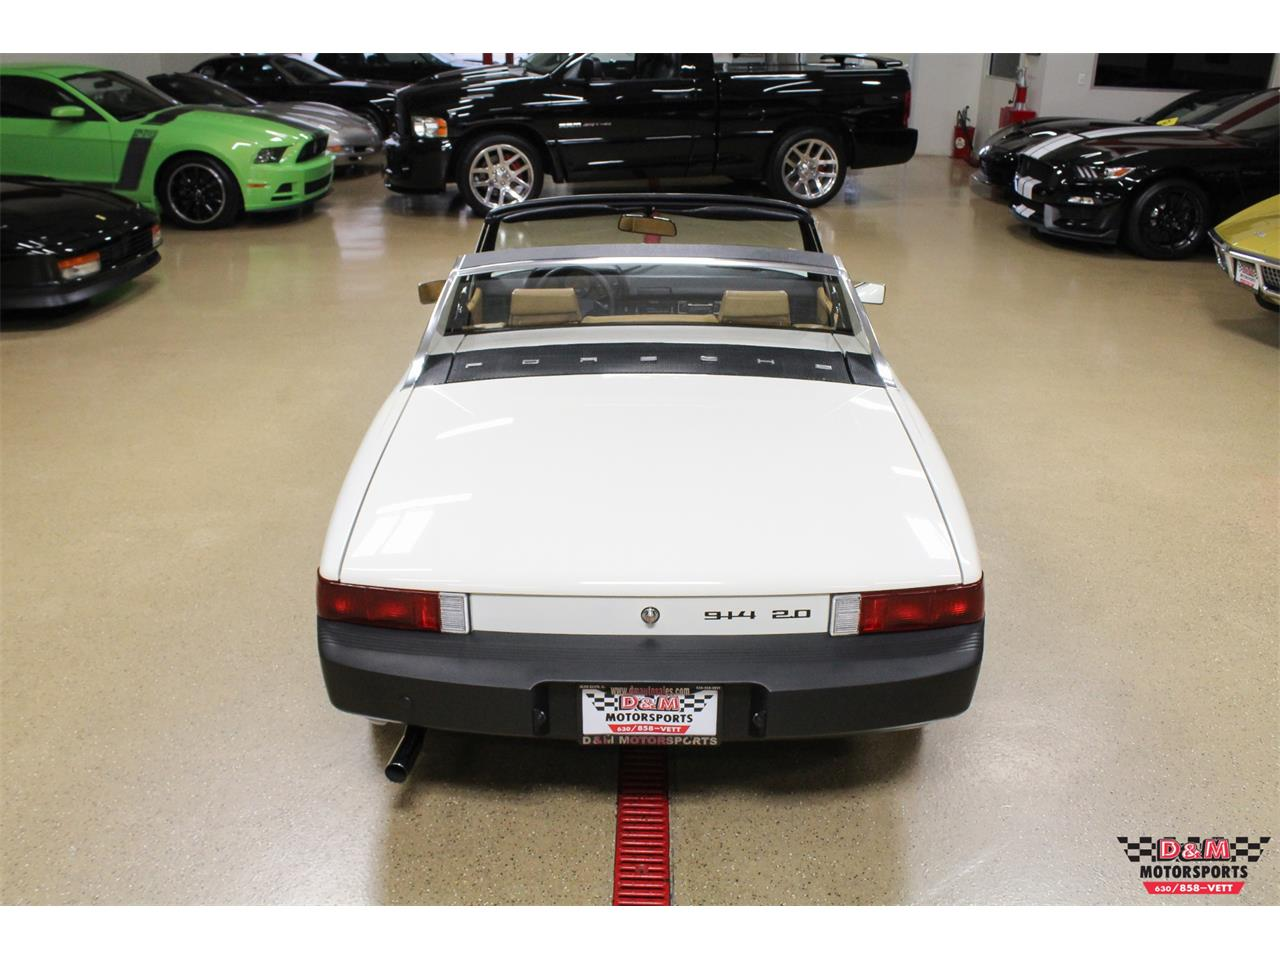 Large Picture of '76 Porsche 914 located in Illinois Offered by D & M Motorsports - P8QY